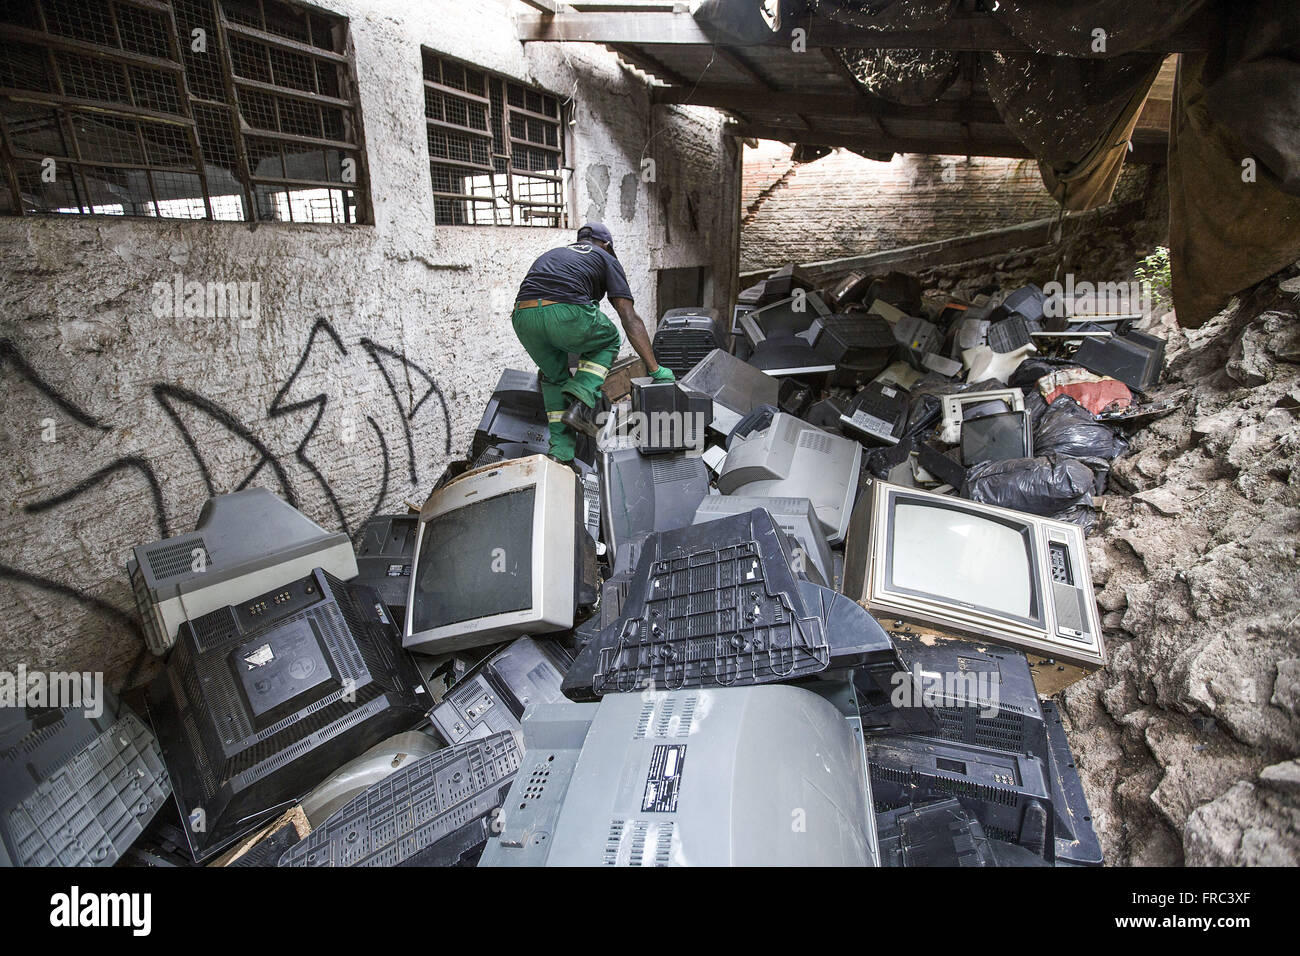 NGO non-governmental organization that is collecting and recycling of electronic waste - Stock Image